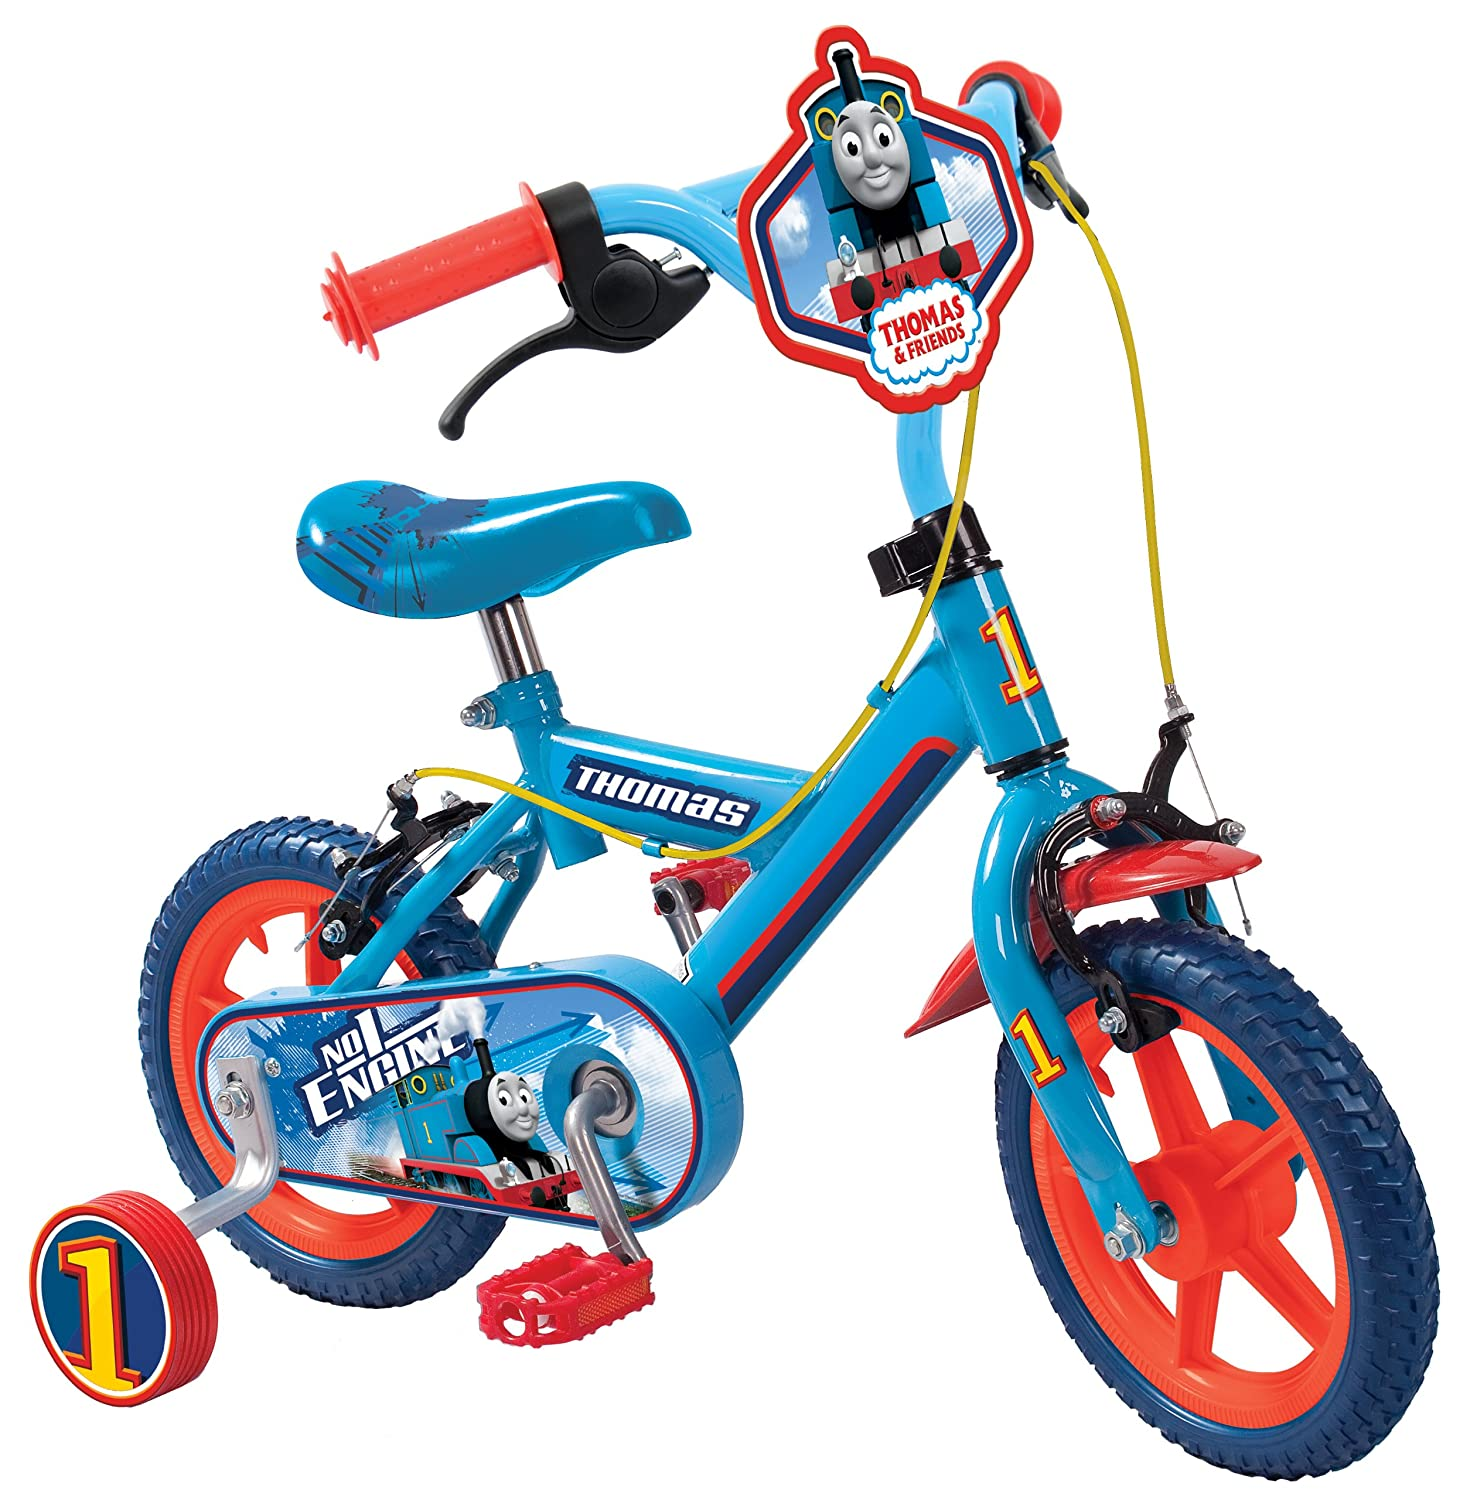 Thomas & Friends Bike – ブルー、12インチ B00J7QHZVA